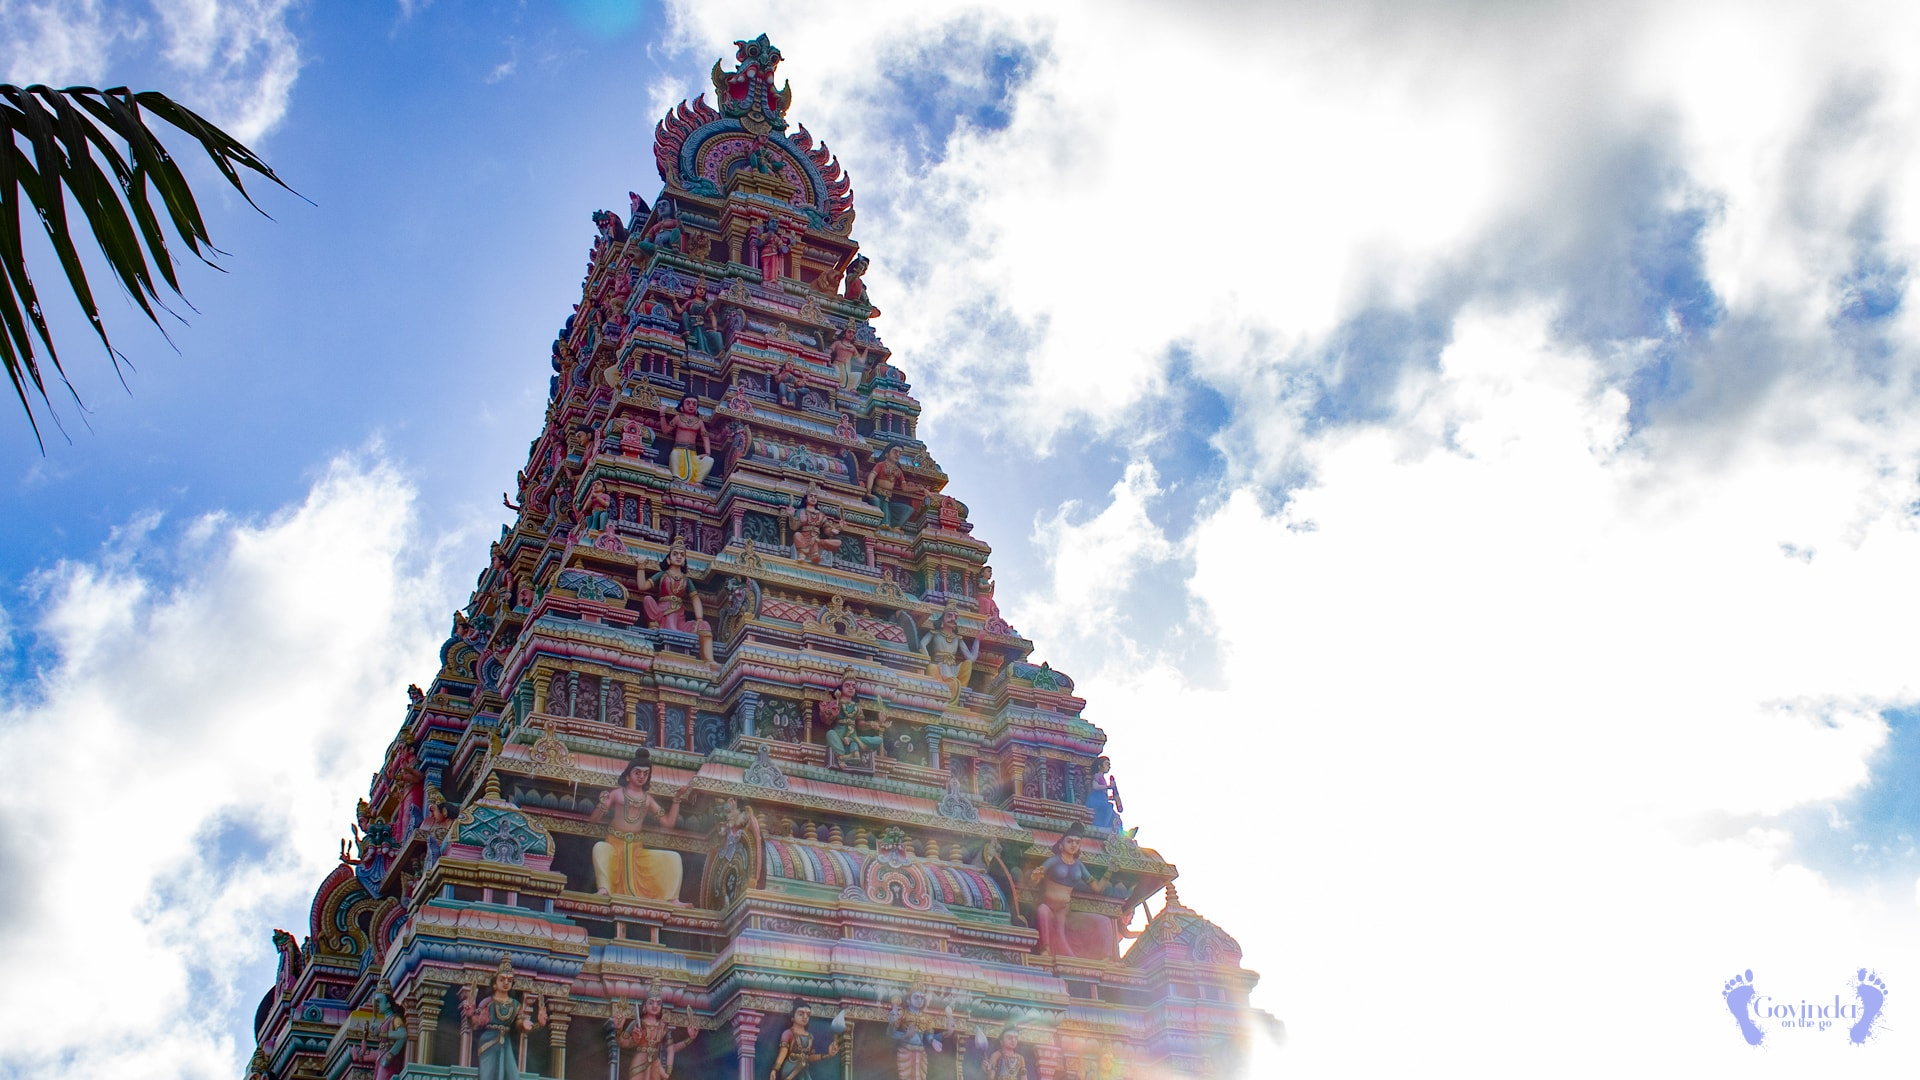 South Indian temple in Mauritius